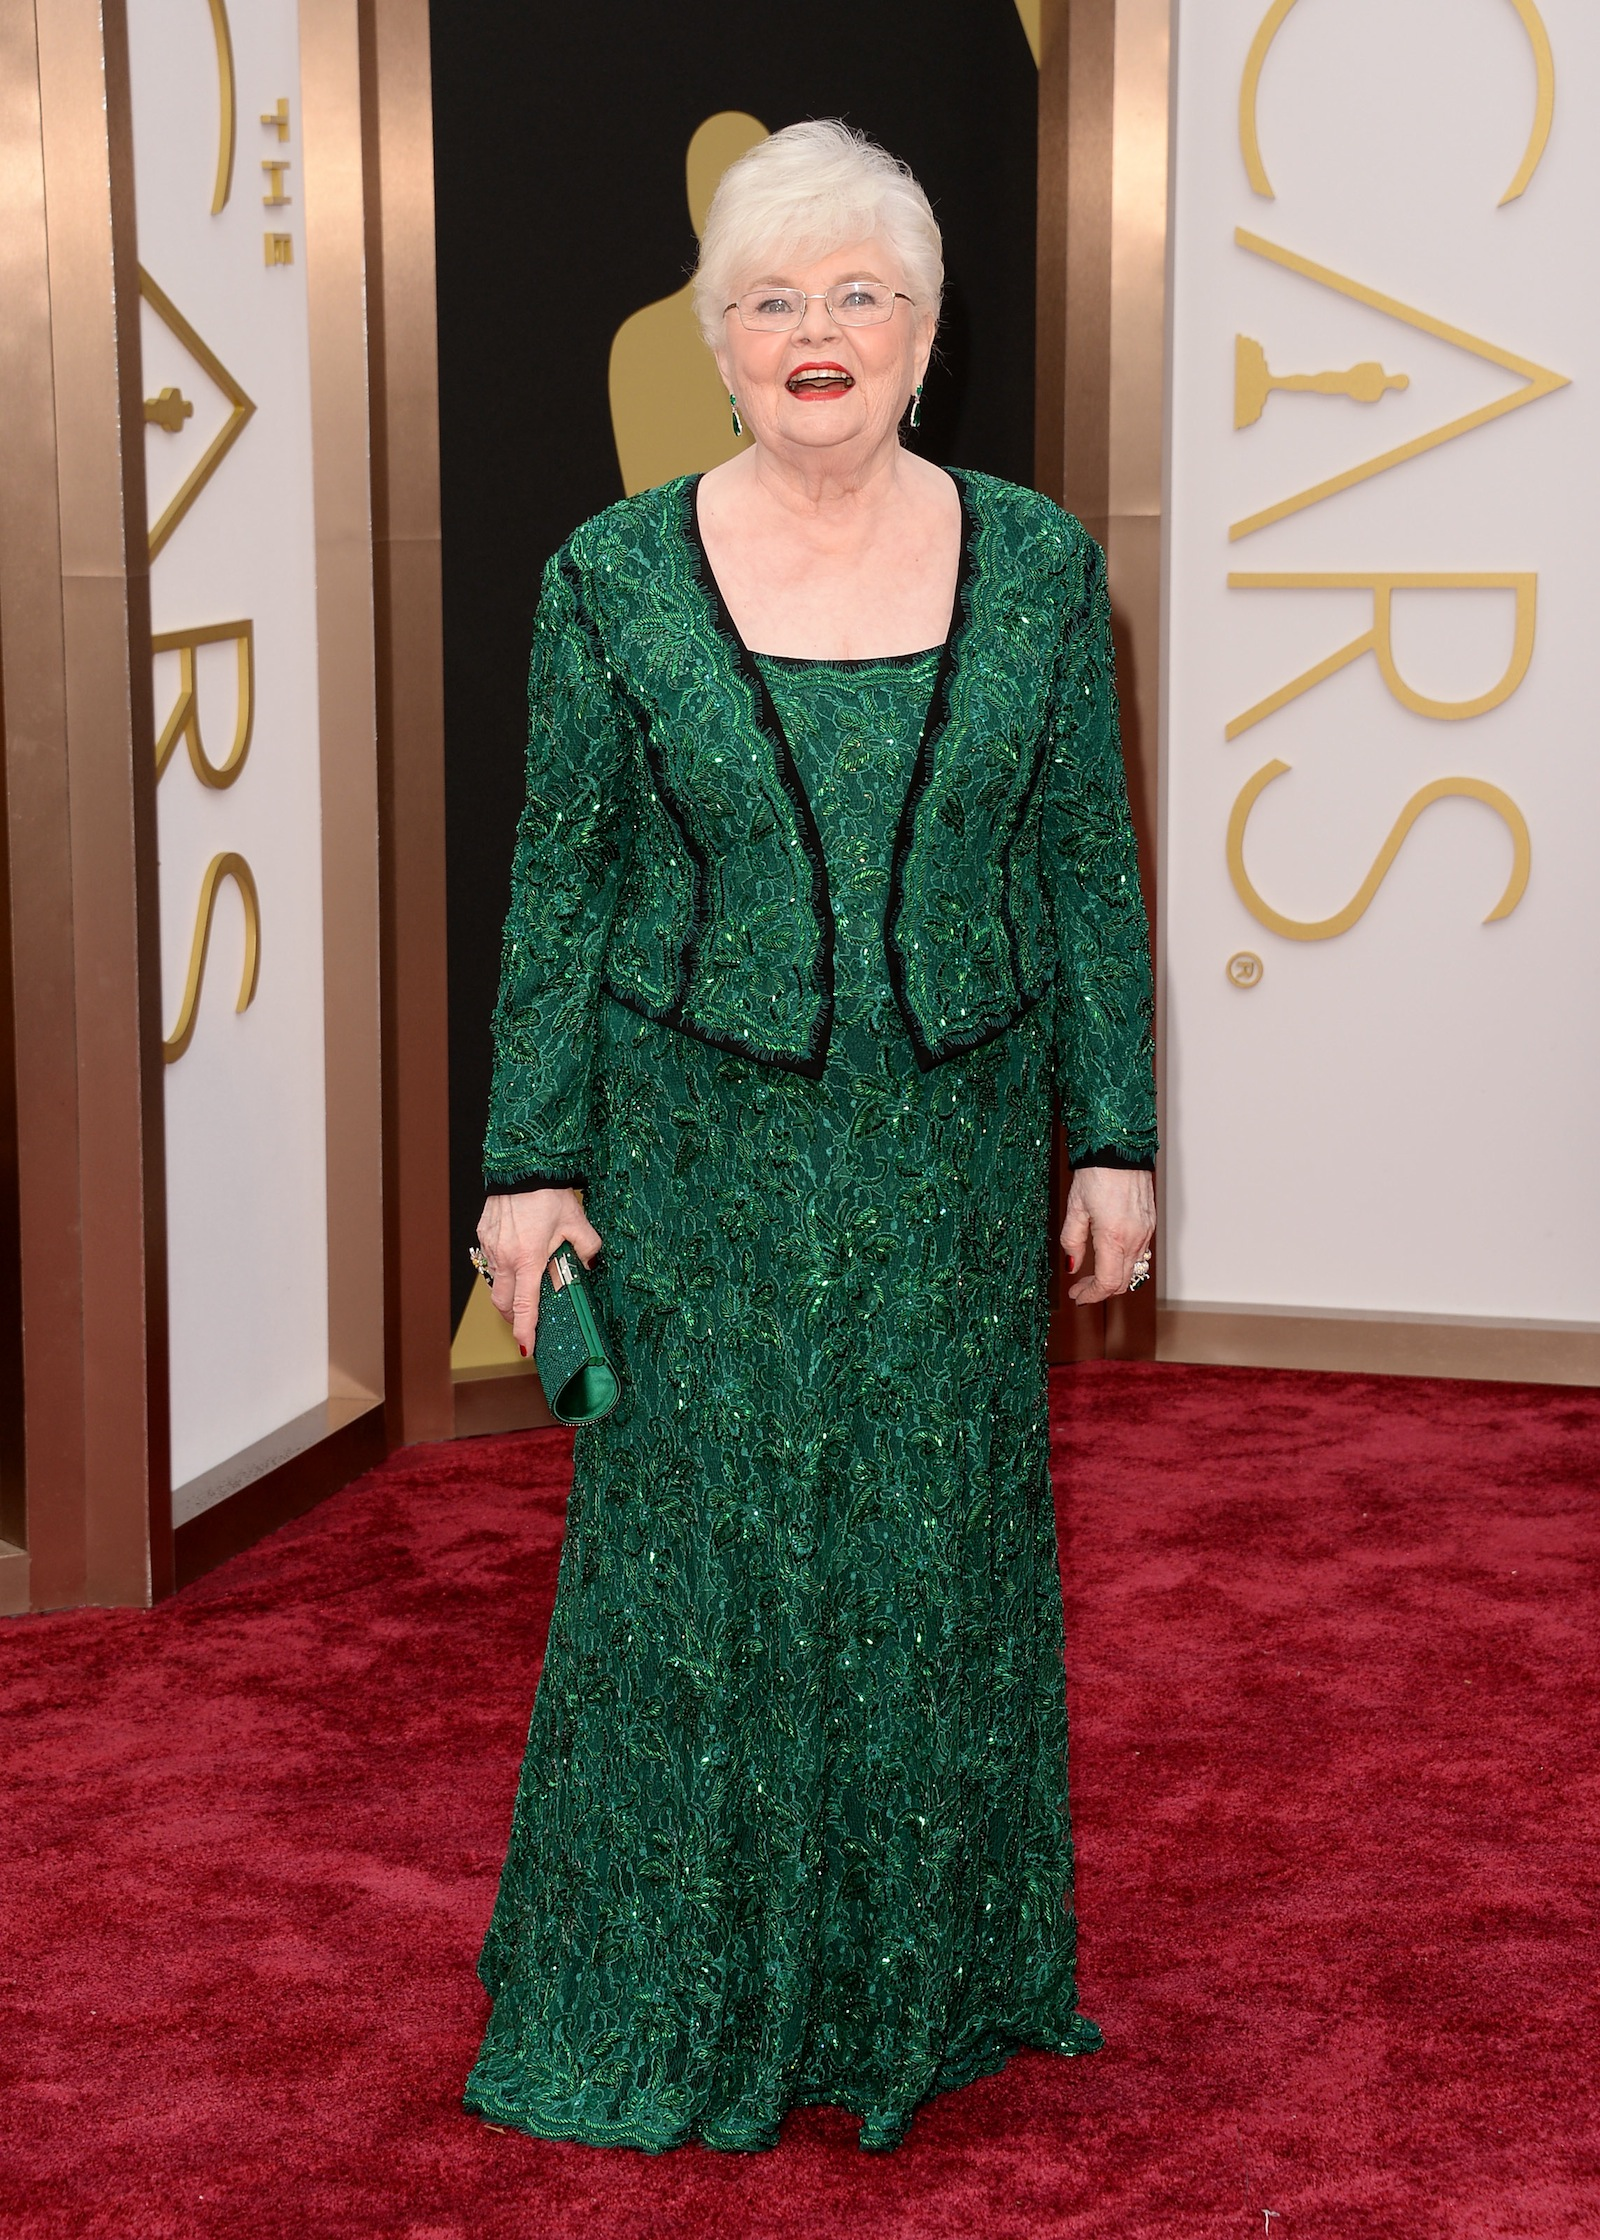 This is what 84 can look like: Best supporting actress nominee June Squibb in a glittery emerald jacket and gown by Tadashi Shoji.